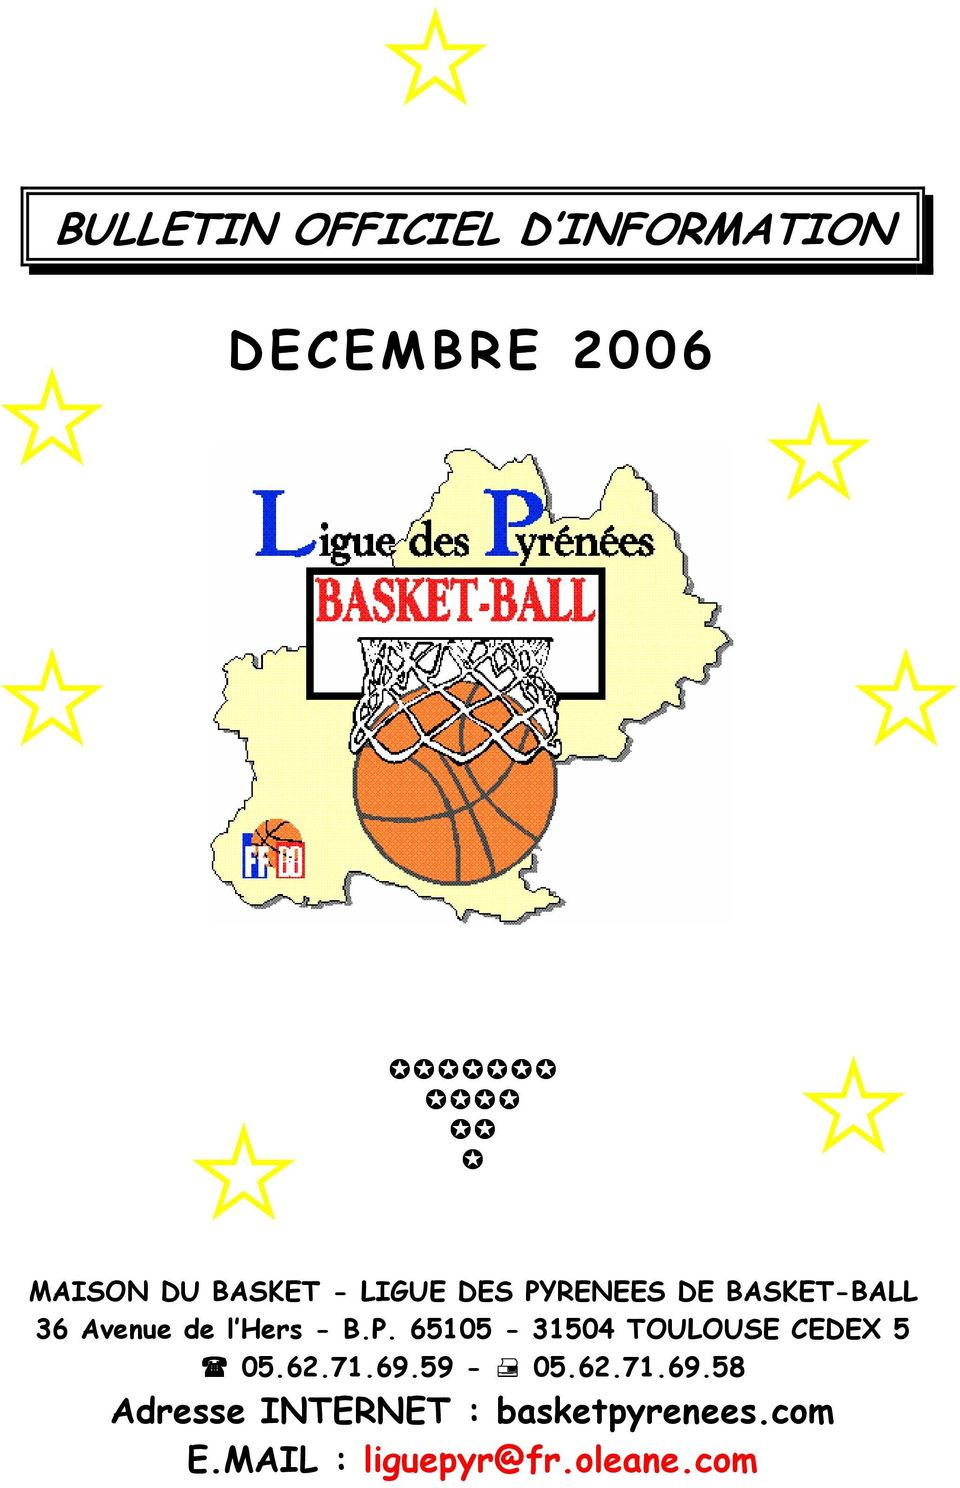 62.71.69.59-05.62.71.69.58 Adresse INTERNET : basketpyrenees.